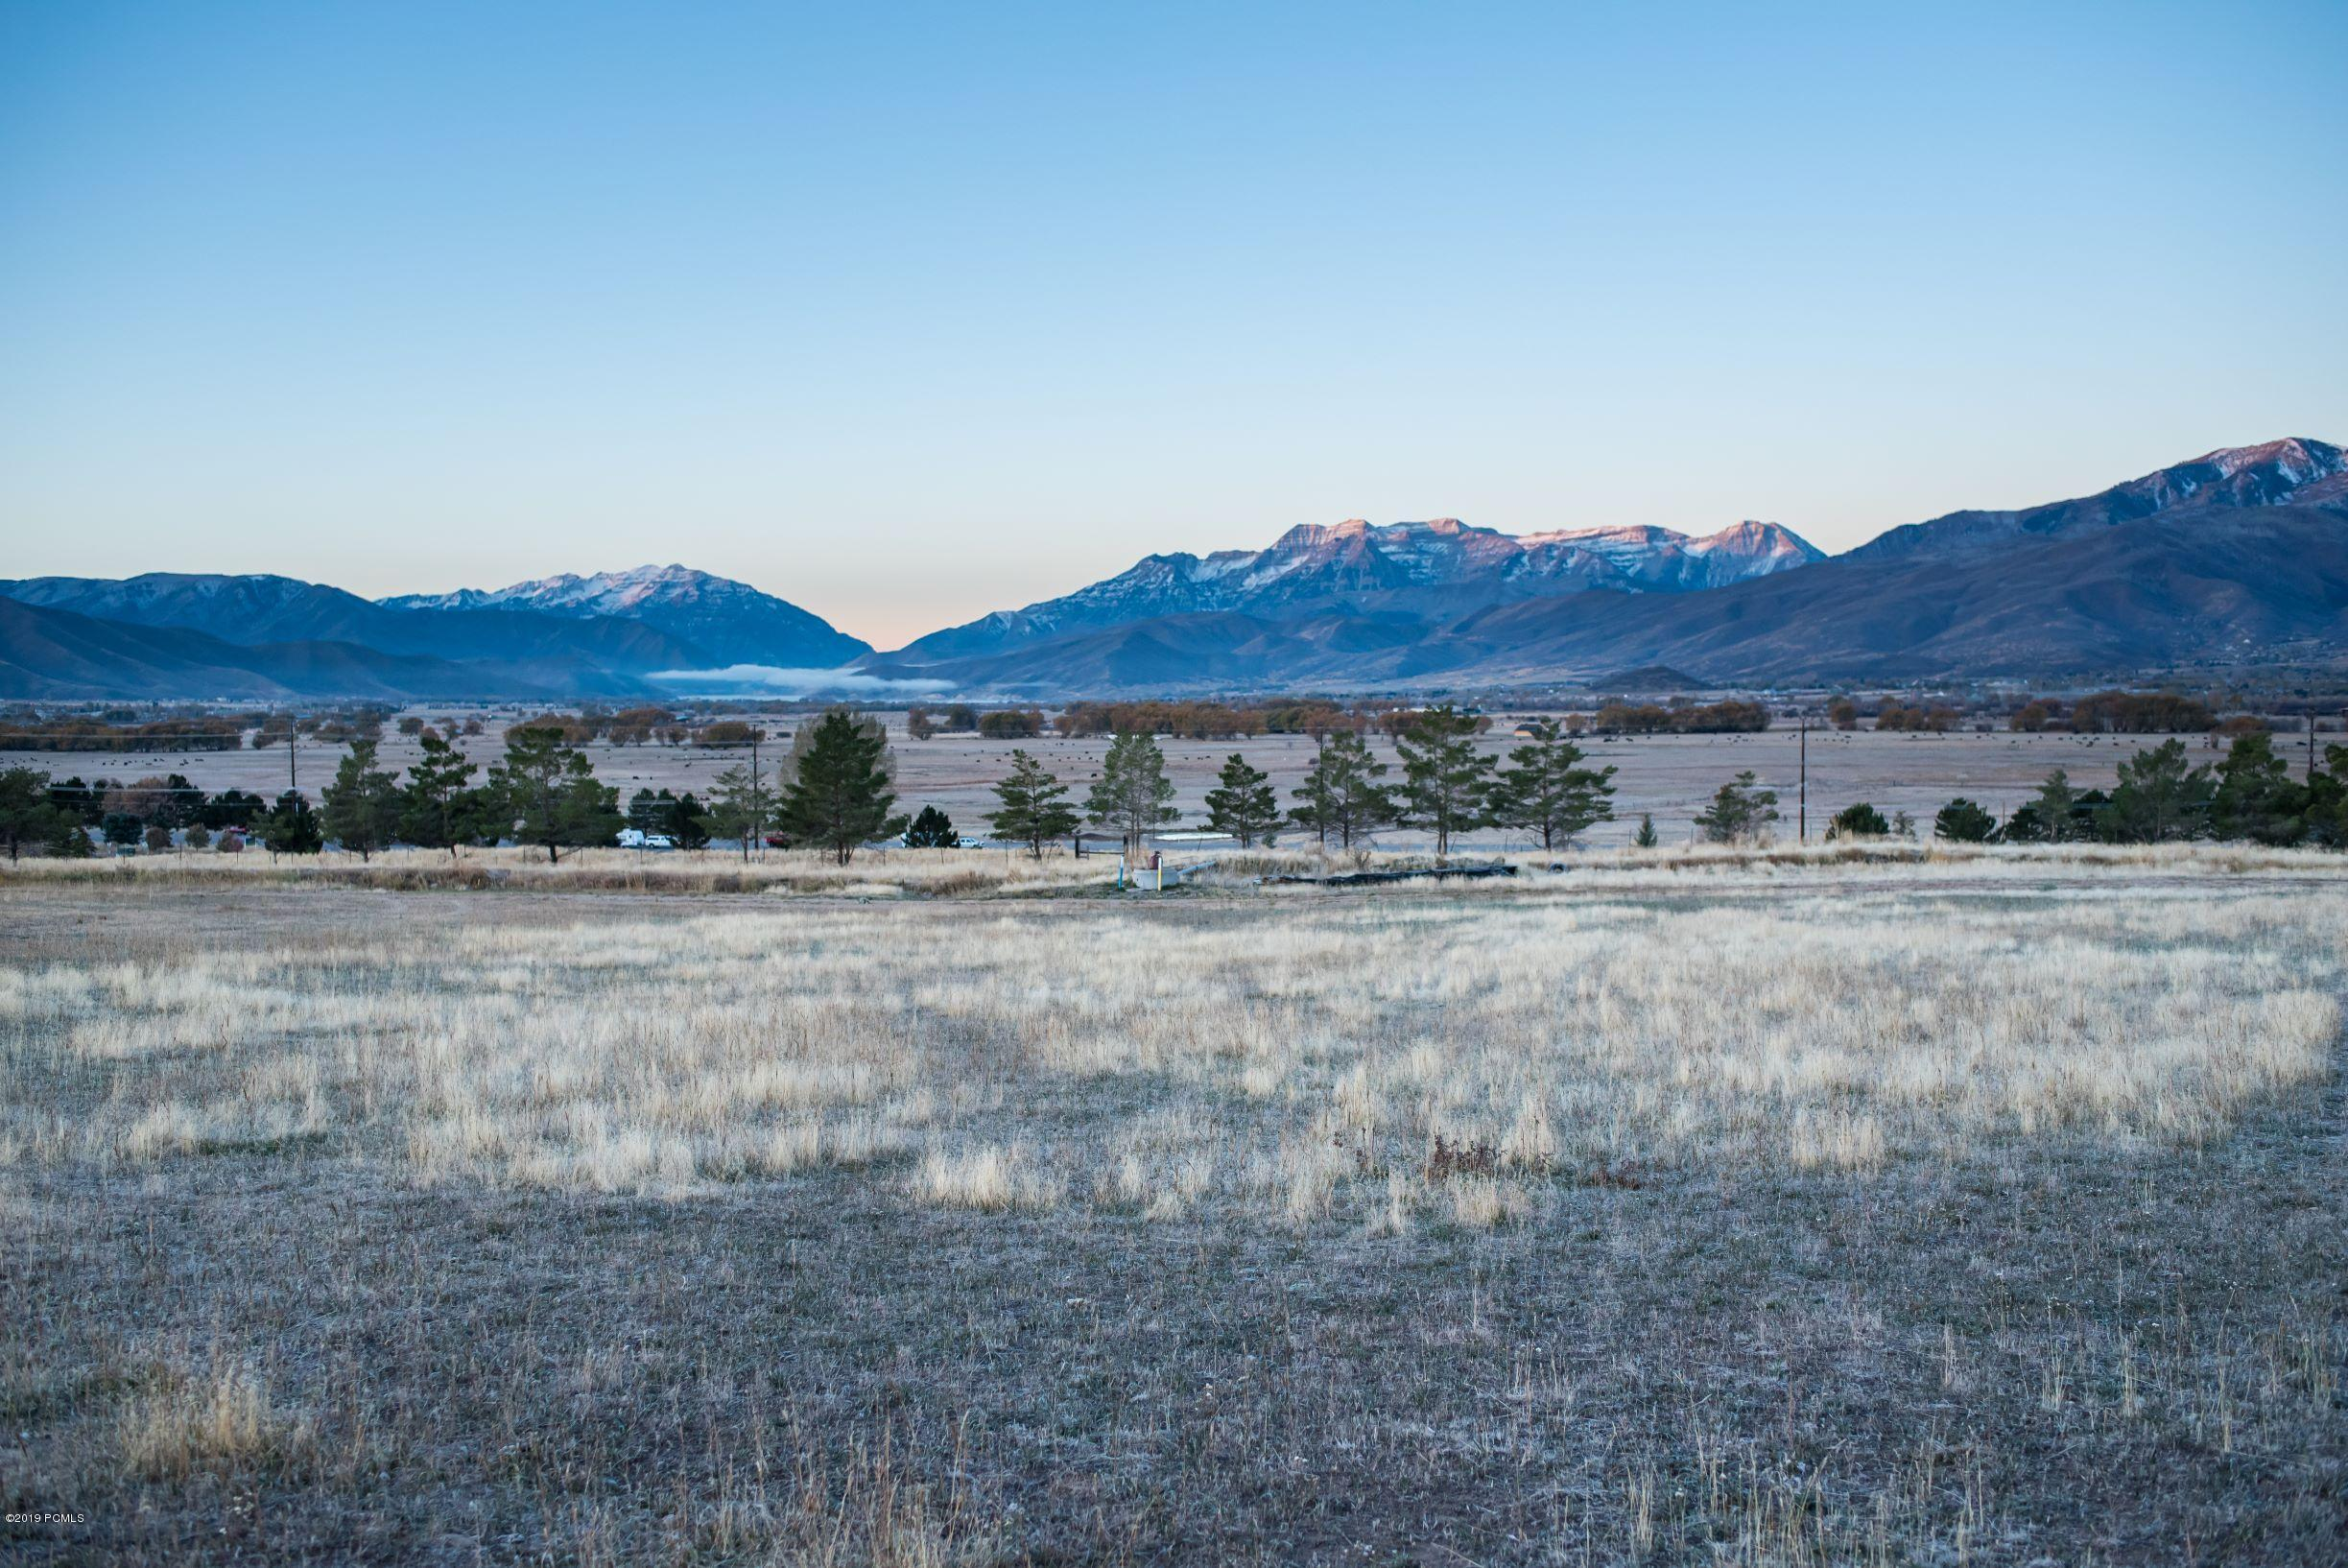 1004 Tatton Park Drive, Heber City, Utah 84032, ,Land,For Sale,Tatton Park,20190109112430415765000000